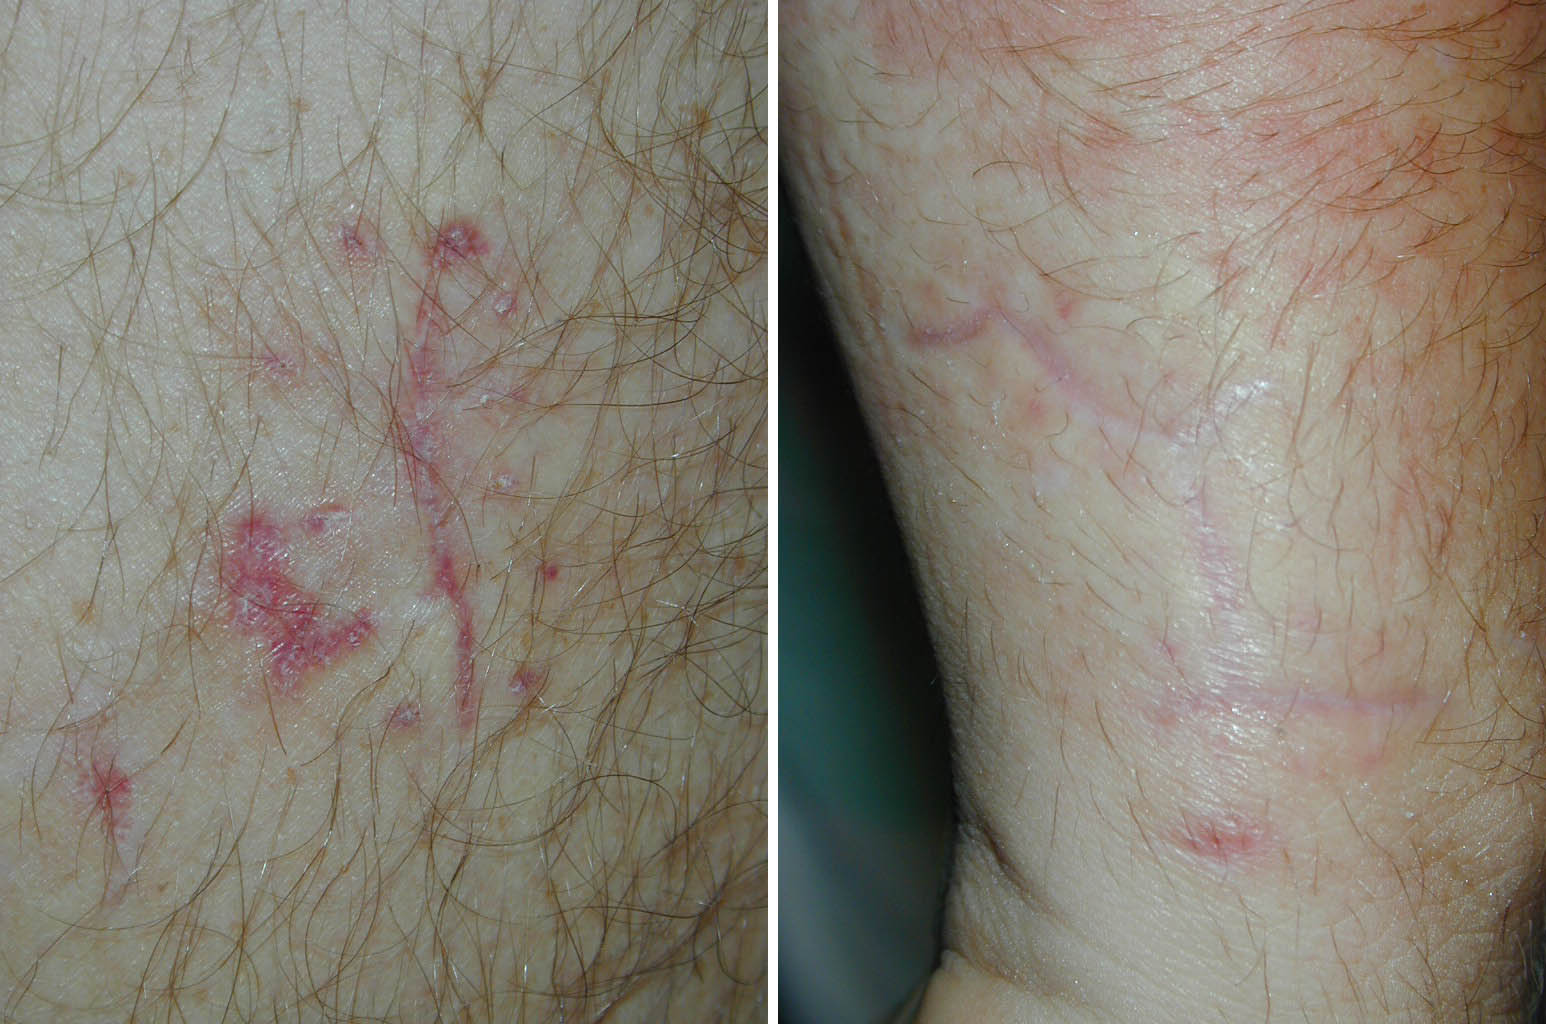 Same patient, same surgeon. No tape was applied on the left. Tape was applied on the right.